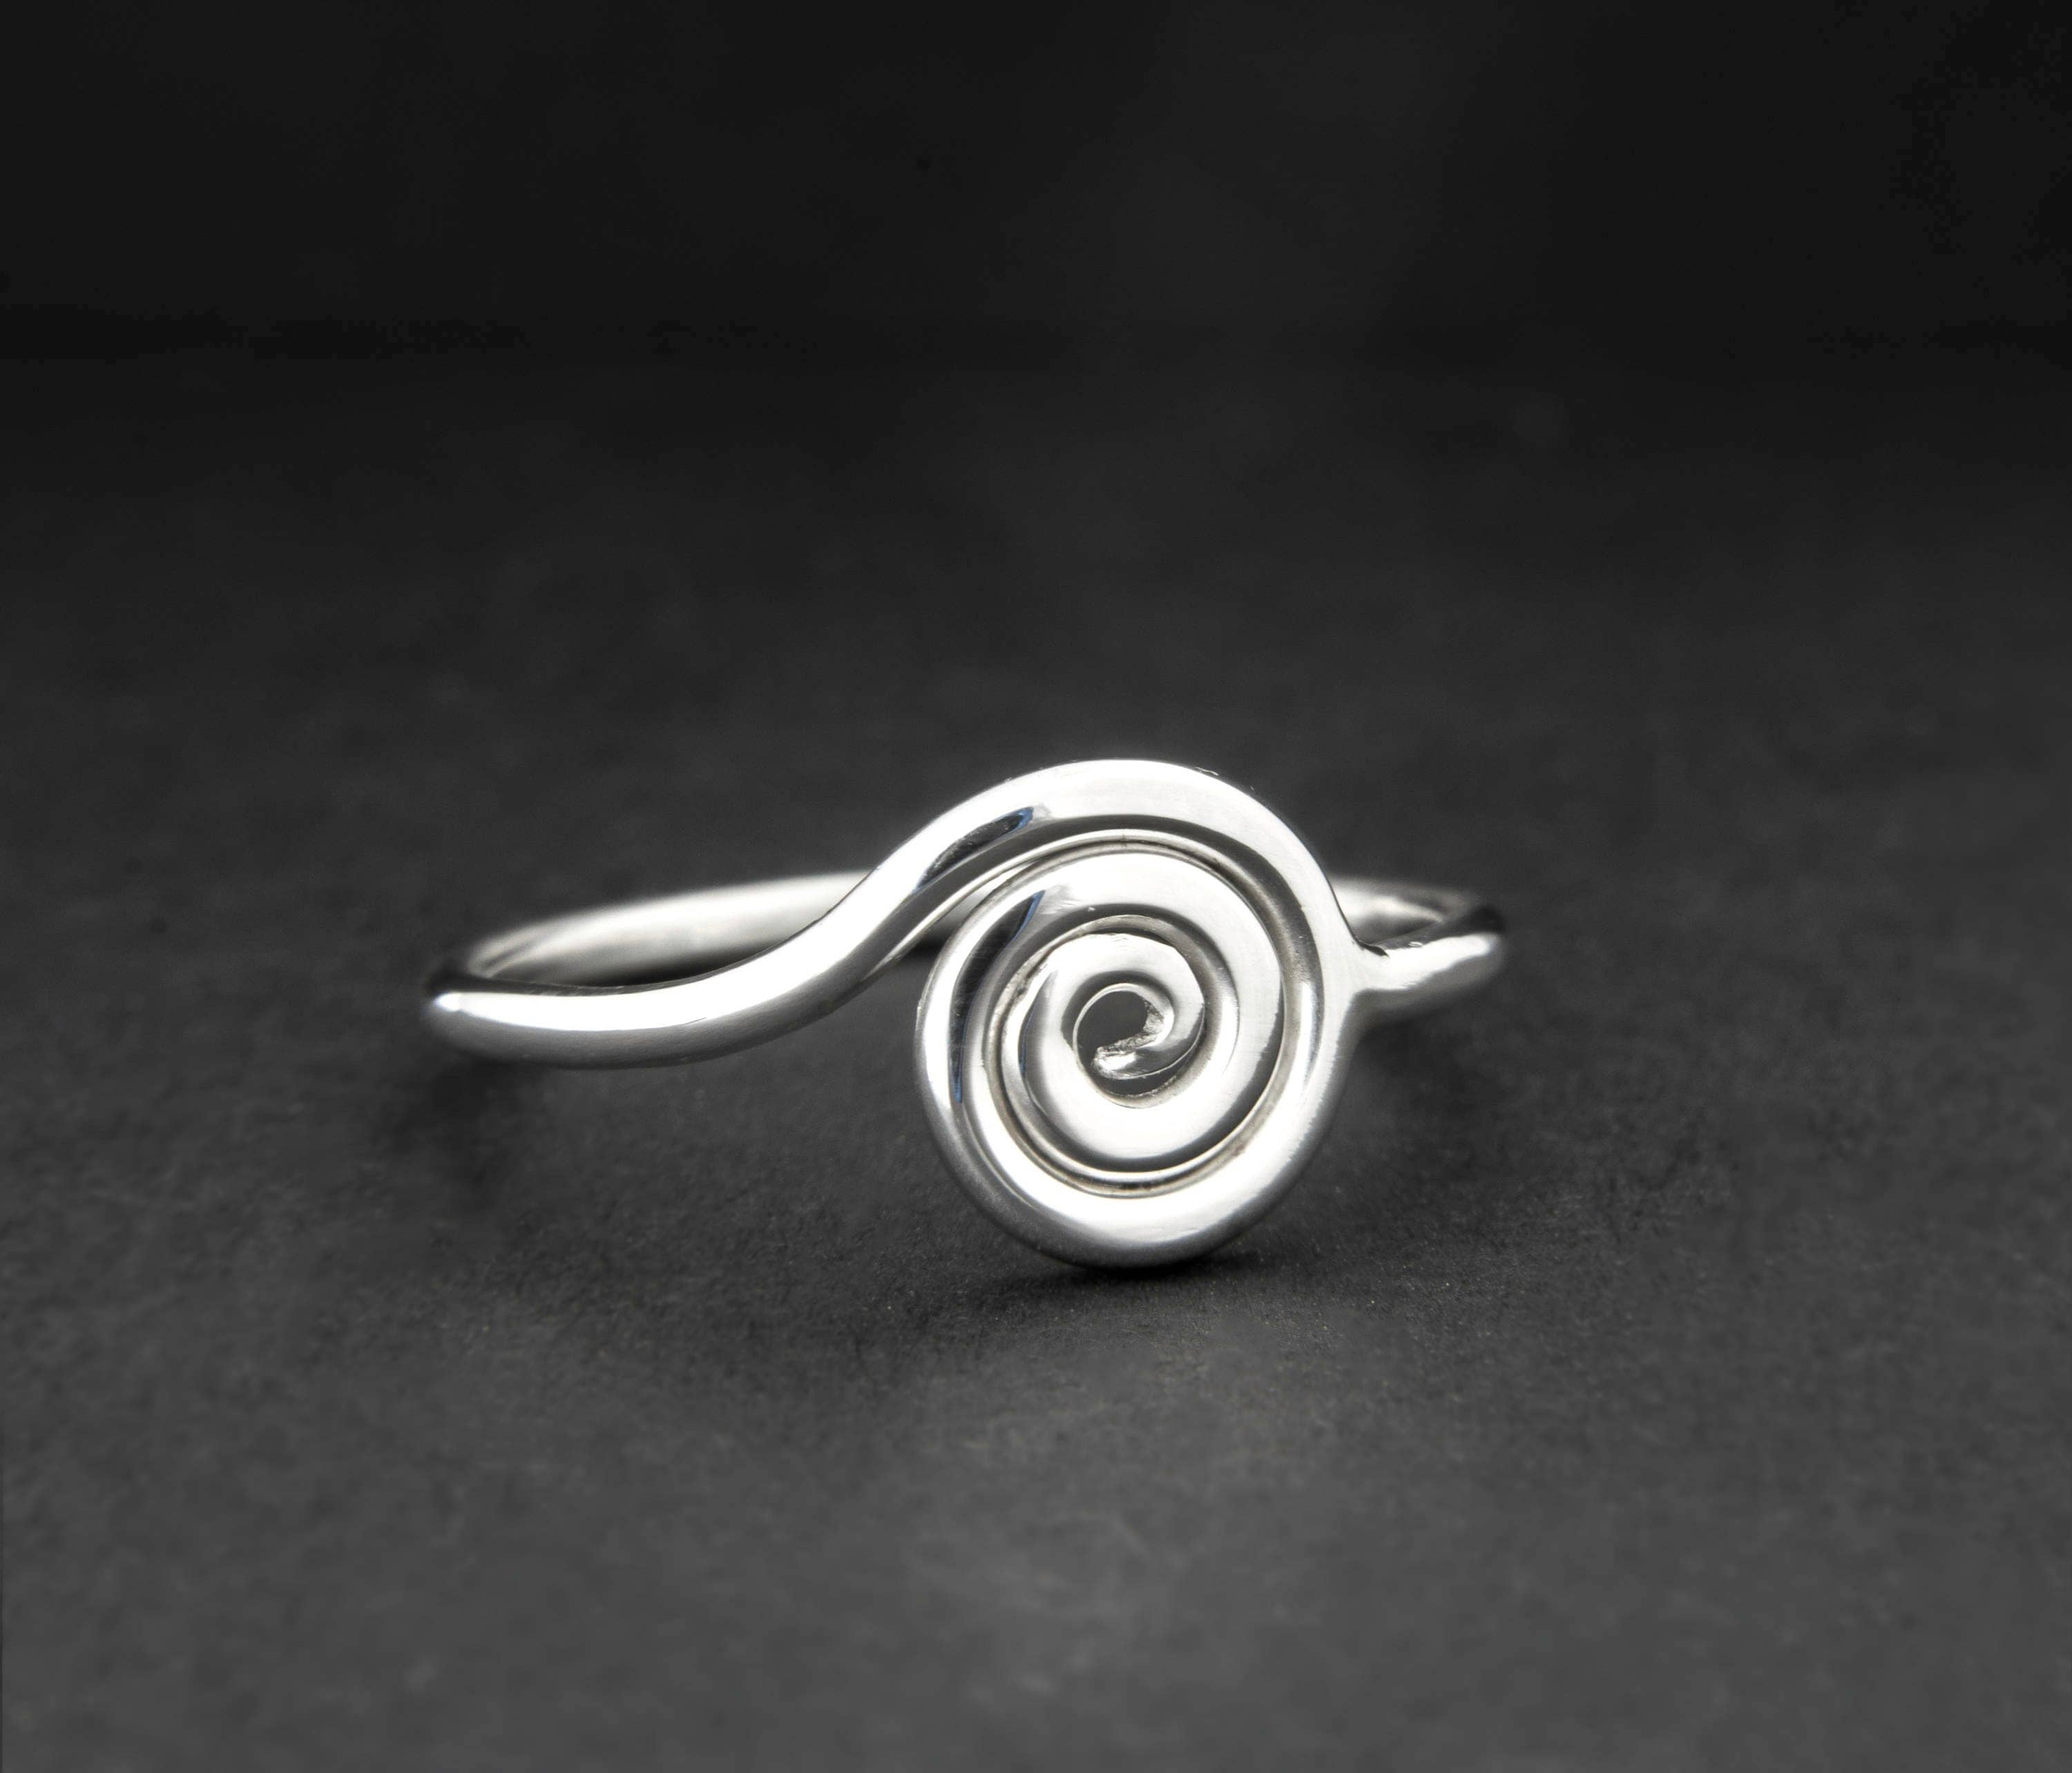 silver spiral ring swirl ring surfer jewelry s